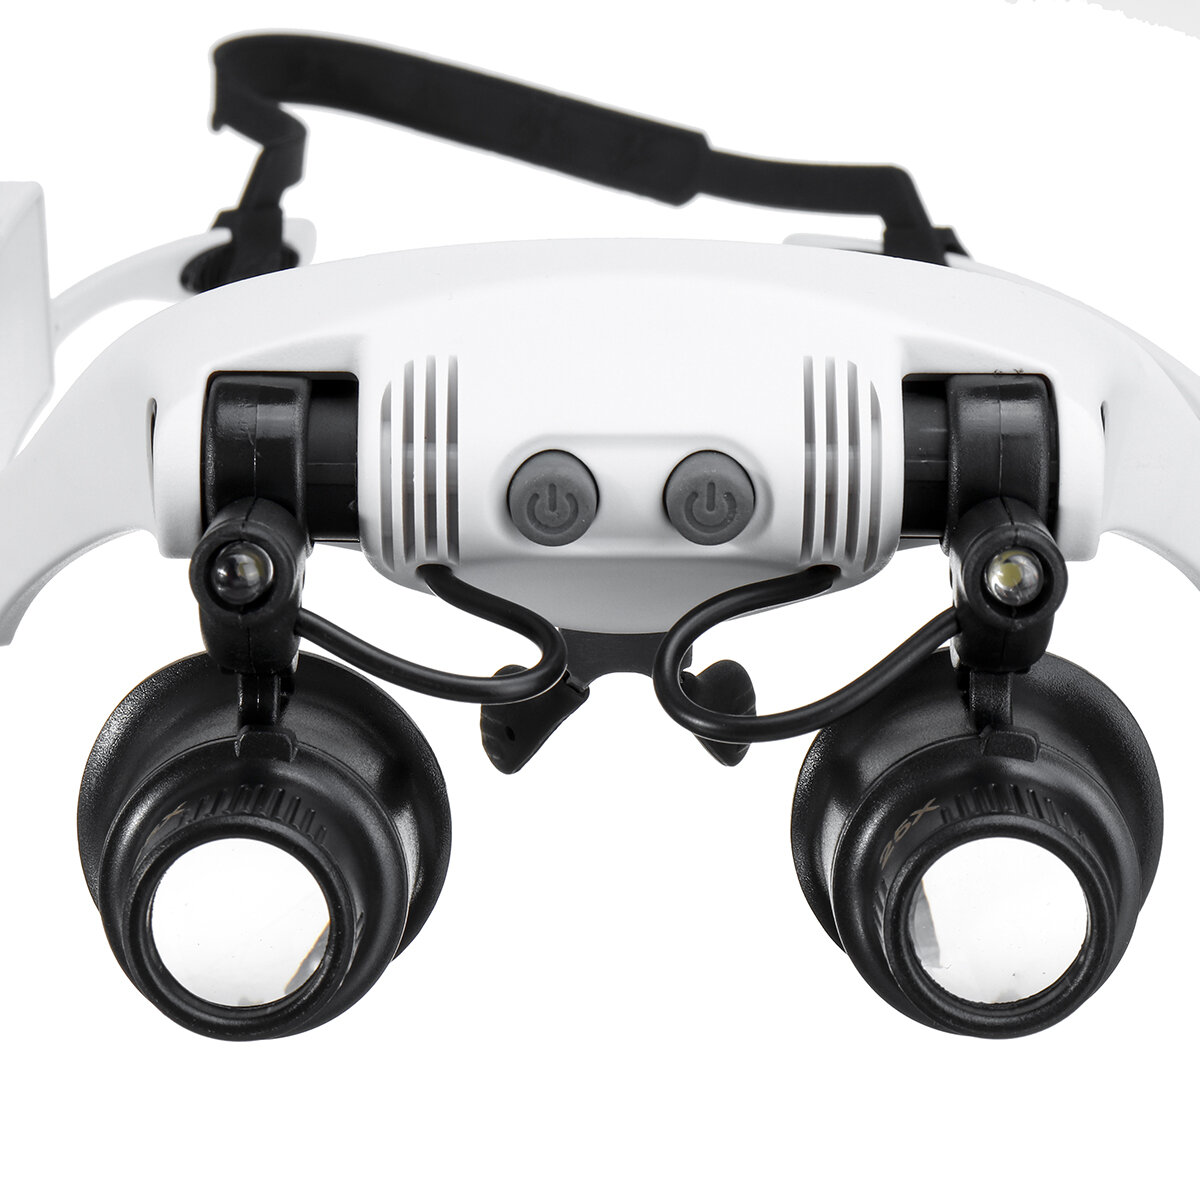 10X 15X 20X 25X LED Magnifying Glasses Jewelry Loupe Magnifier Binocular Loupe Glasses with Light Enlargement Mirror - 4